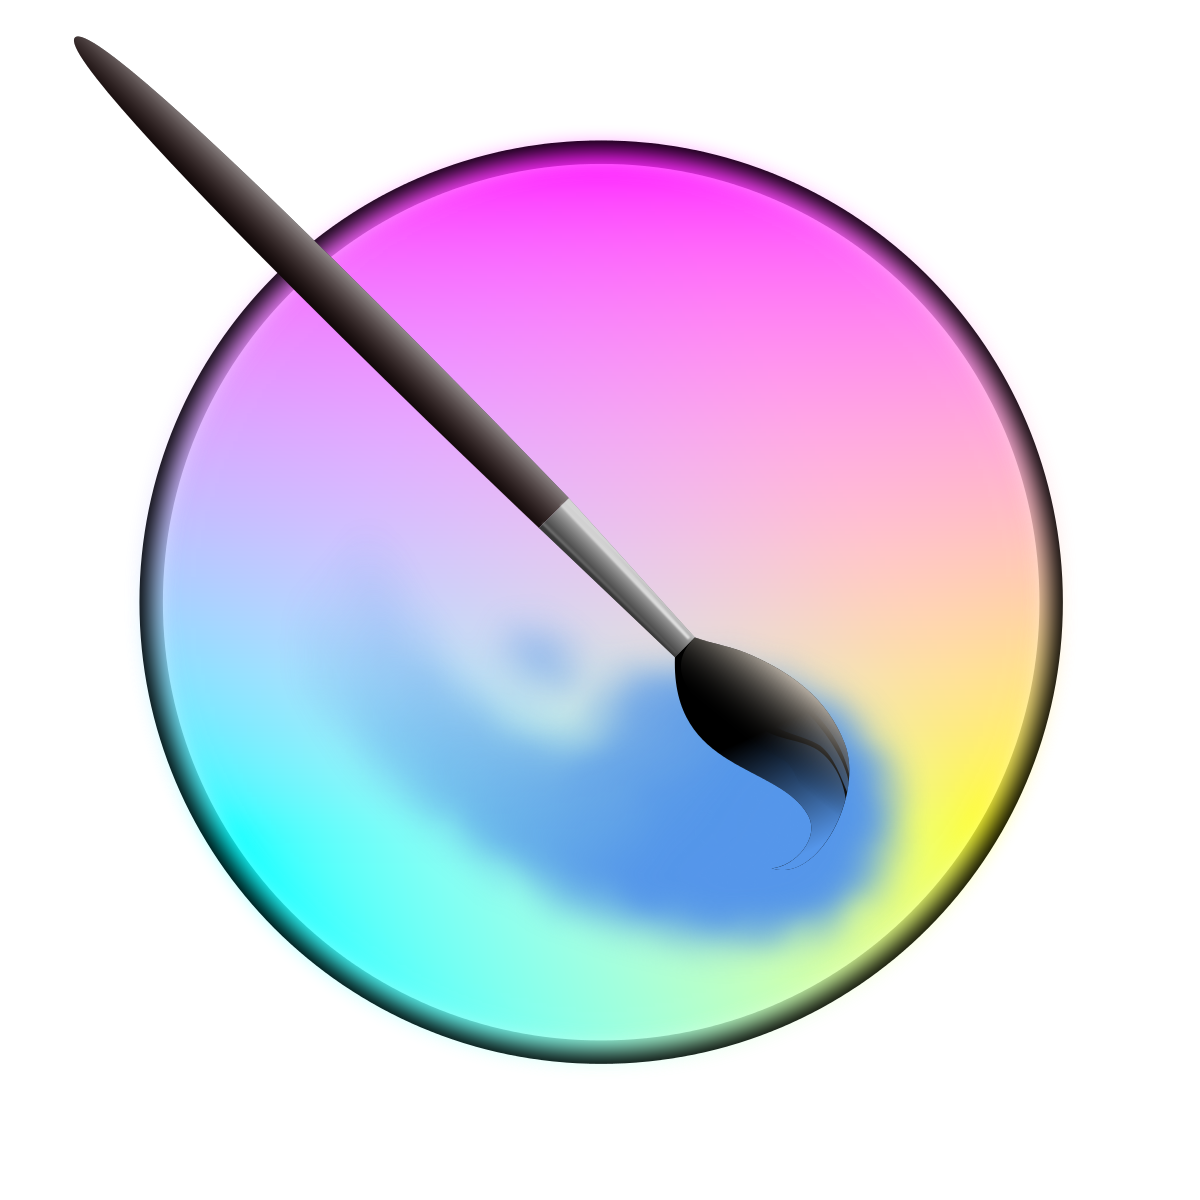 Crayons clipart solid object. Krita wikipedia